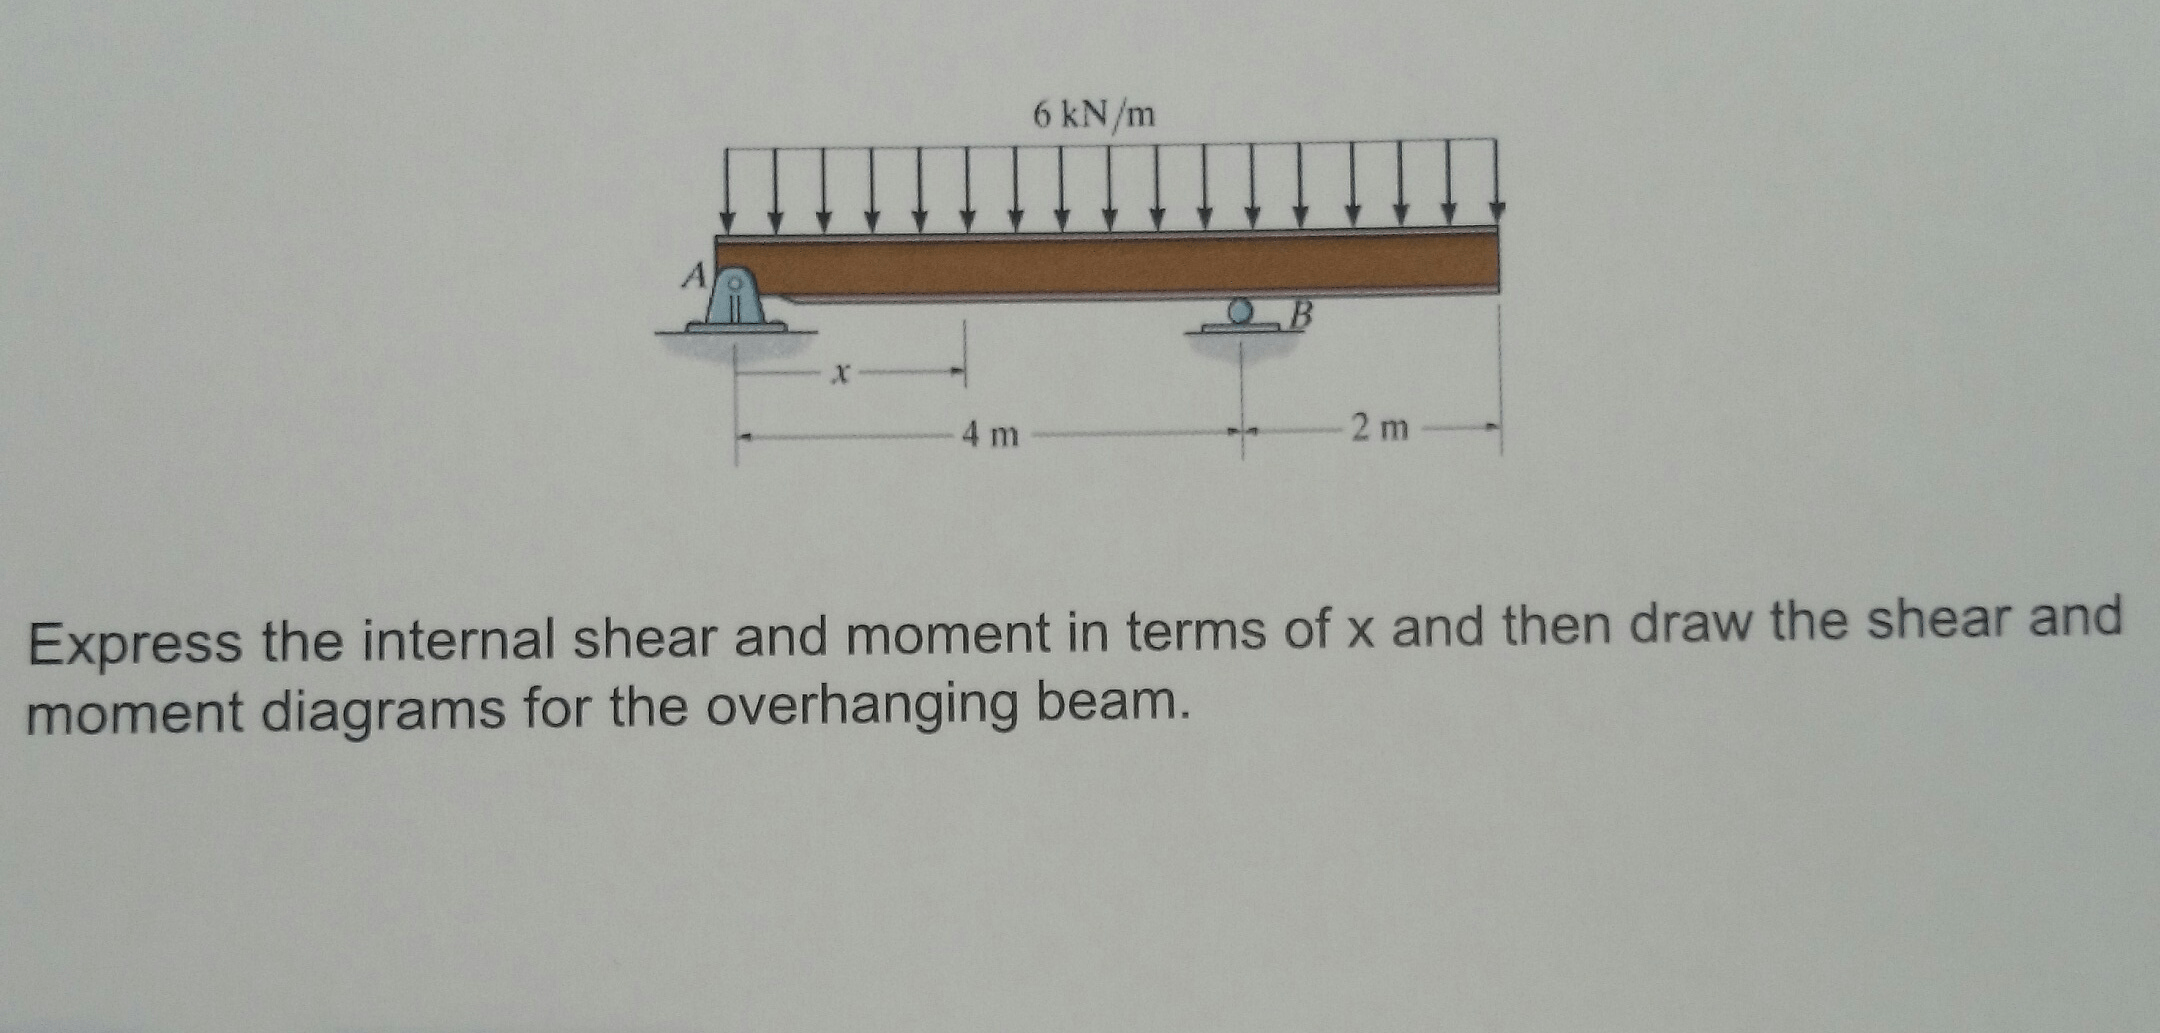 how to draw shear and bending moment diagrams ssl certificates work diagram solved express the internal in terms of